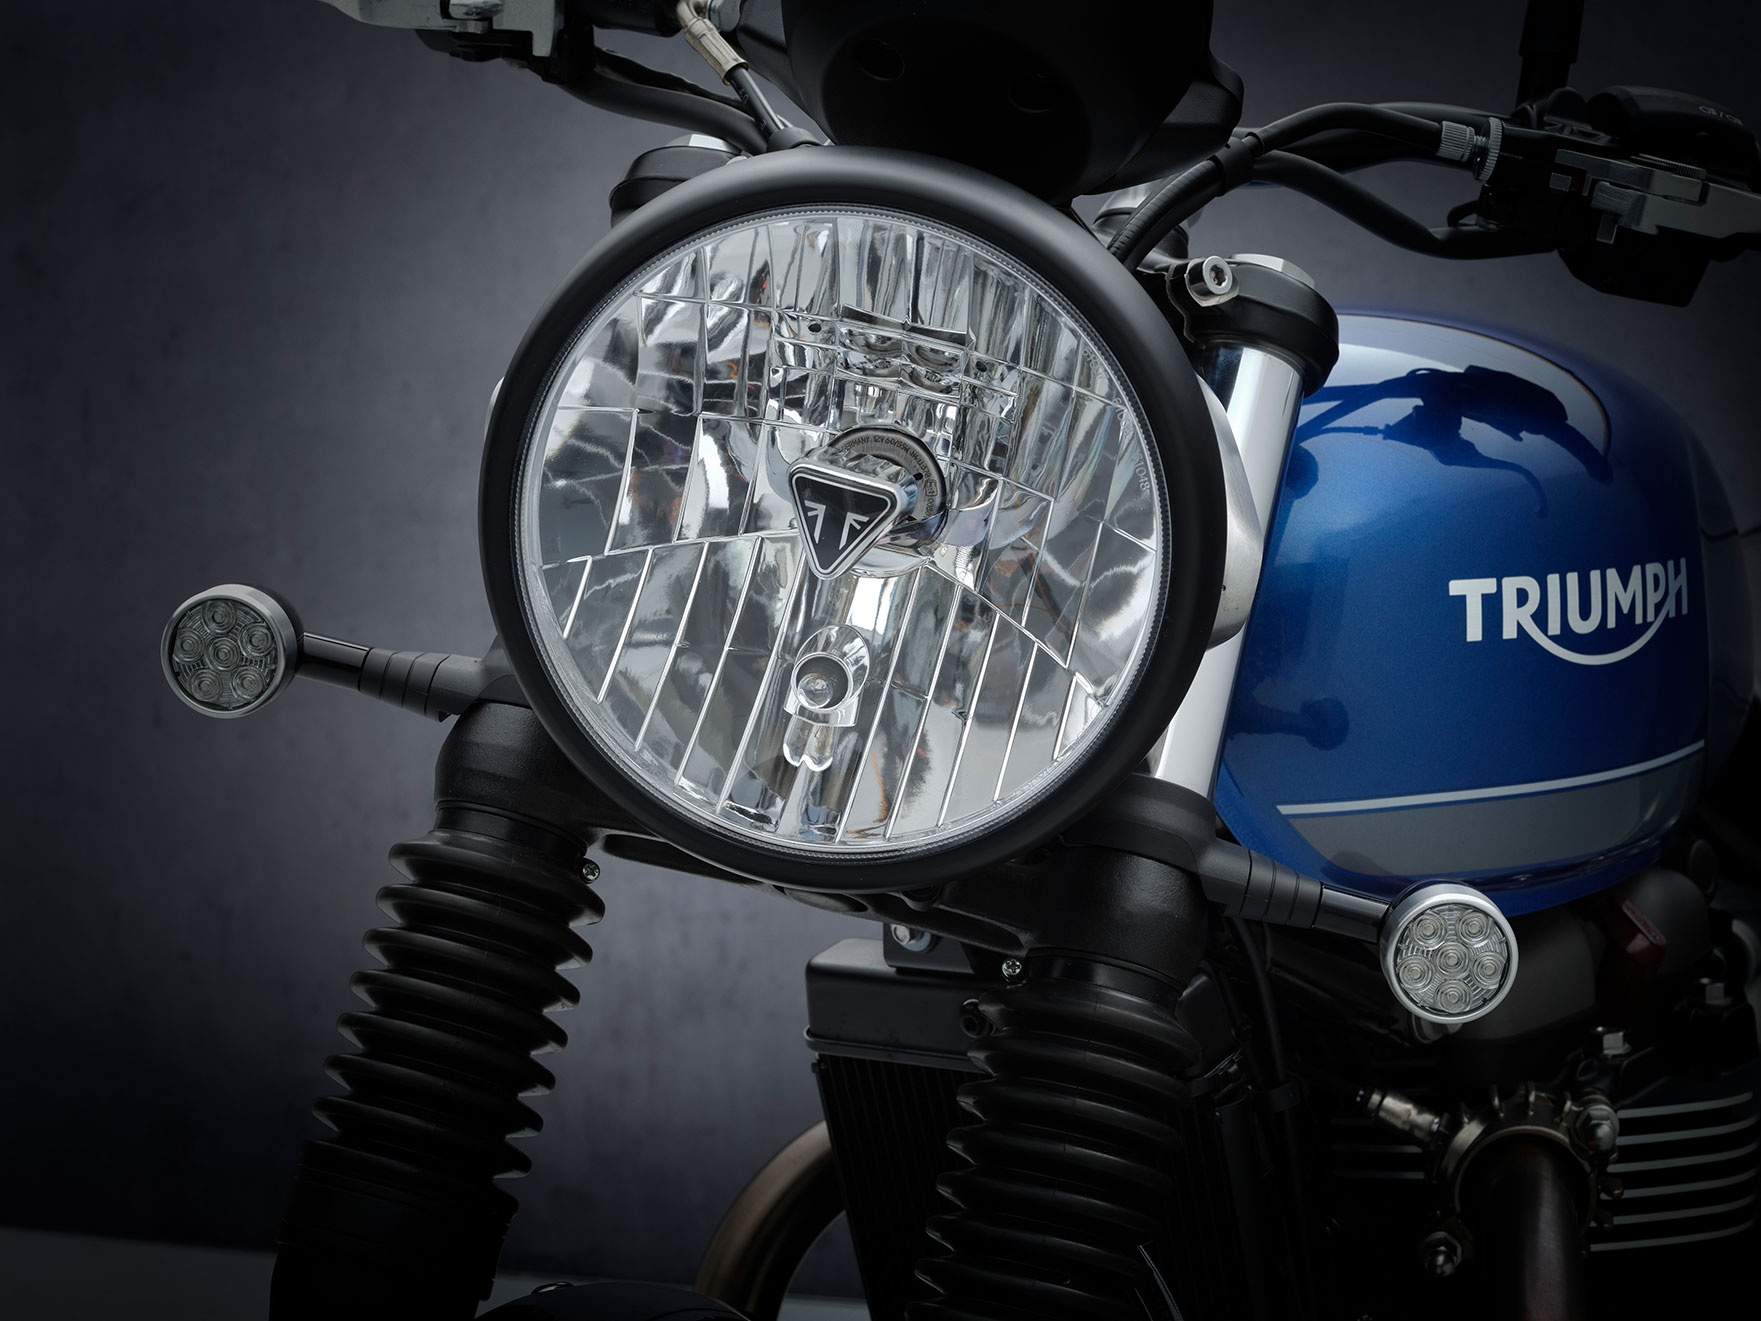 StreetTwin_21MY_1861_BR_Details5